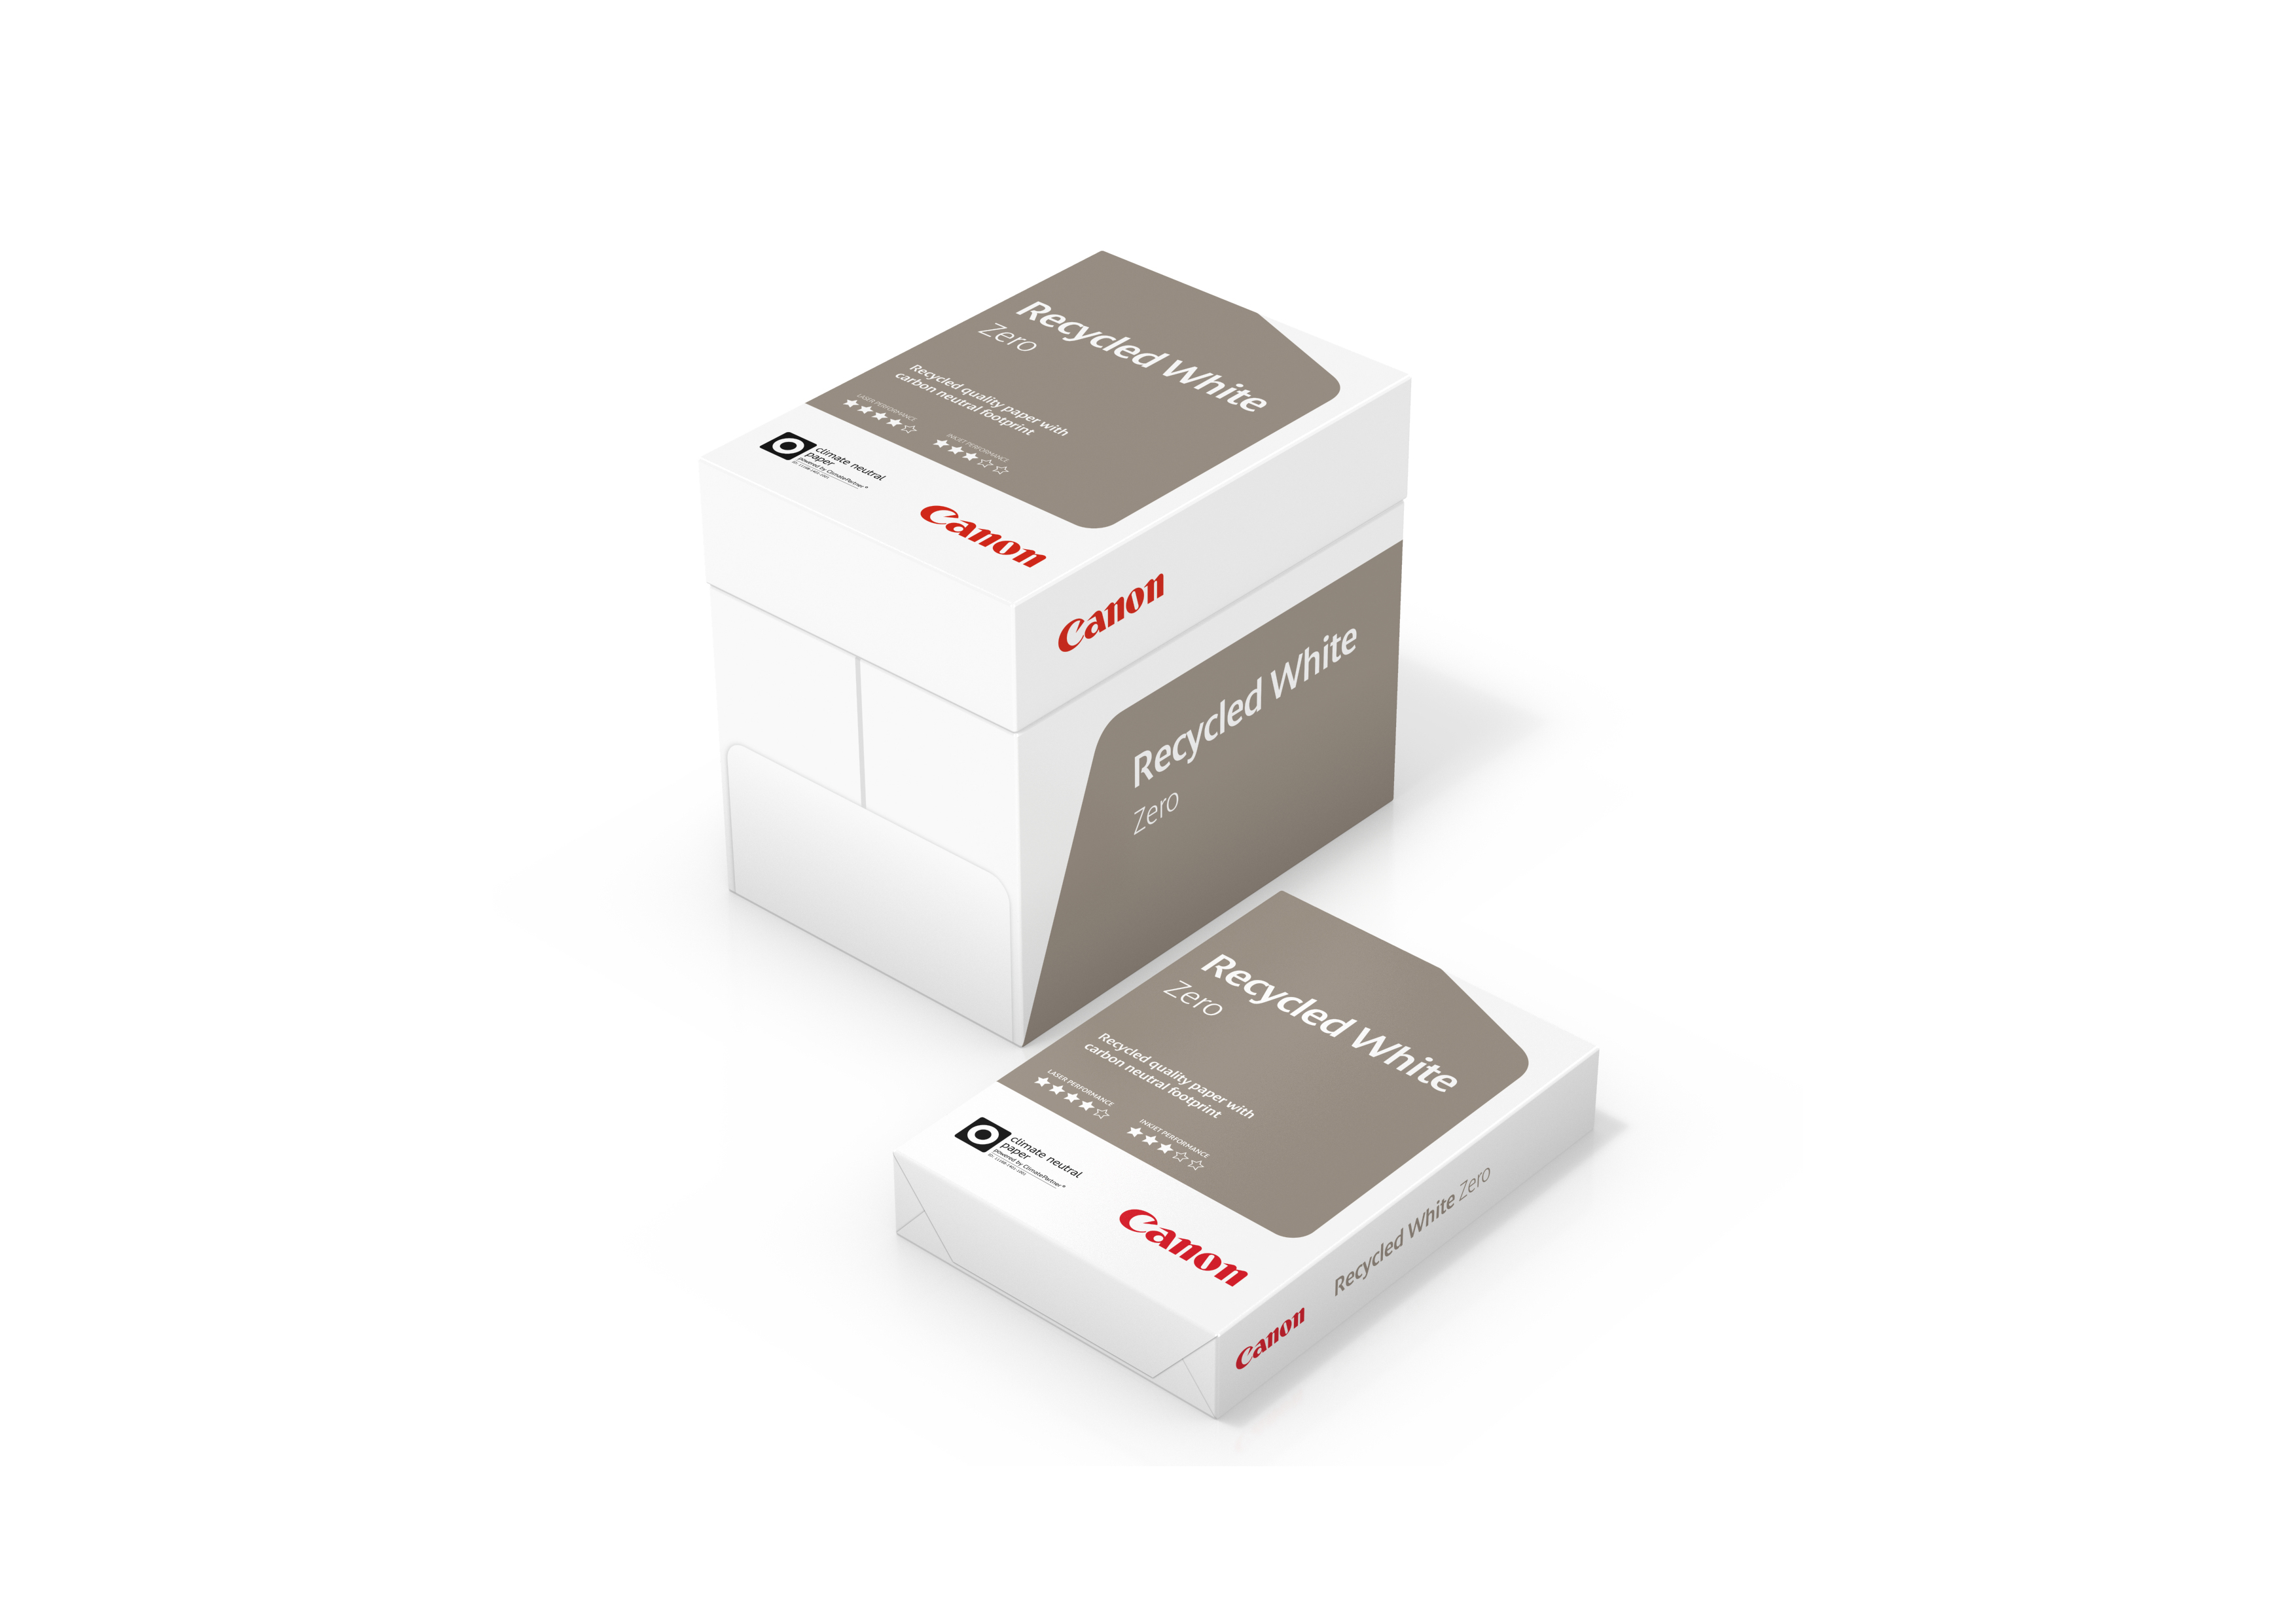 canon recycled label BR